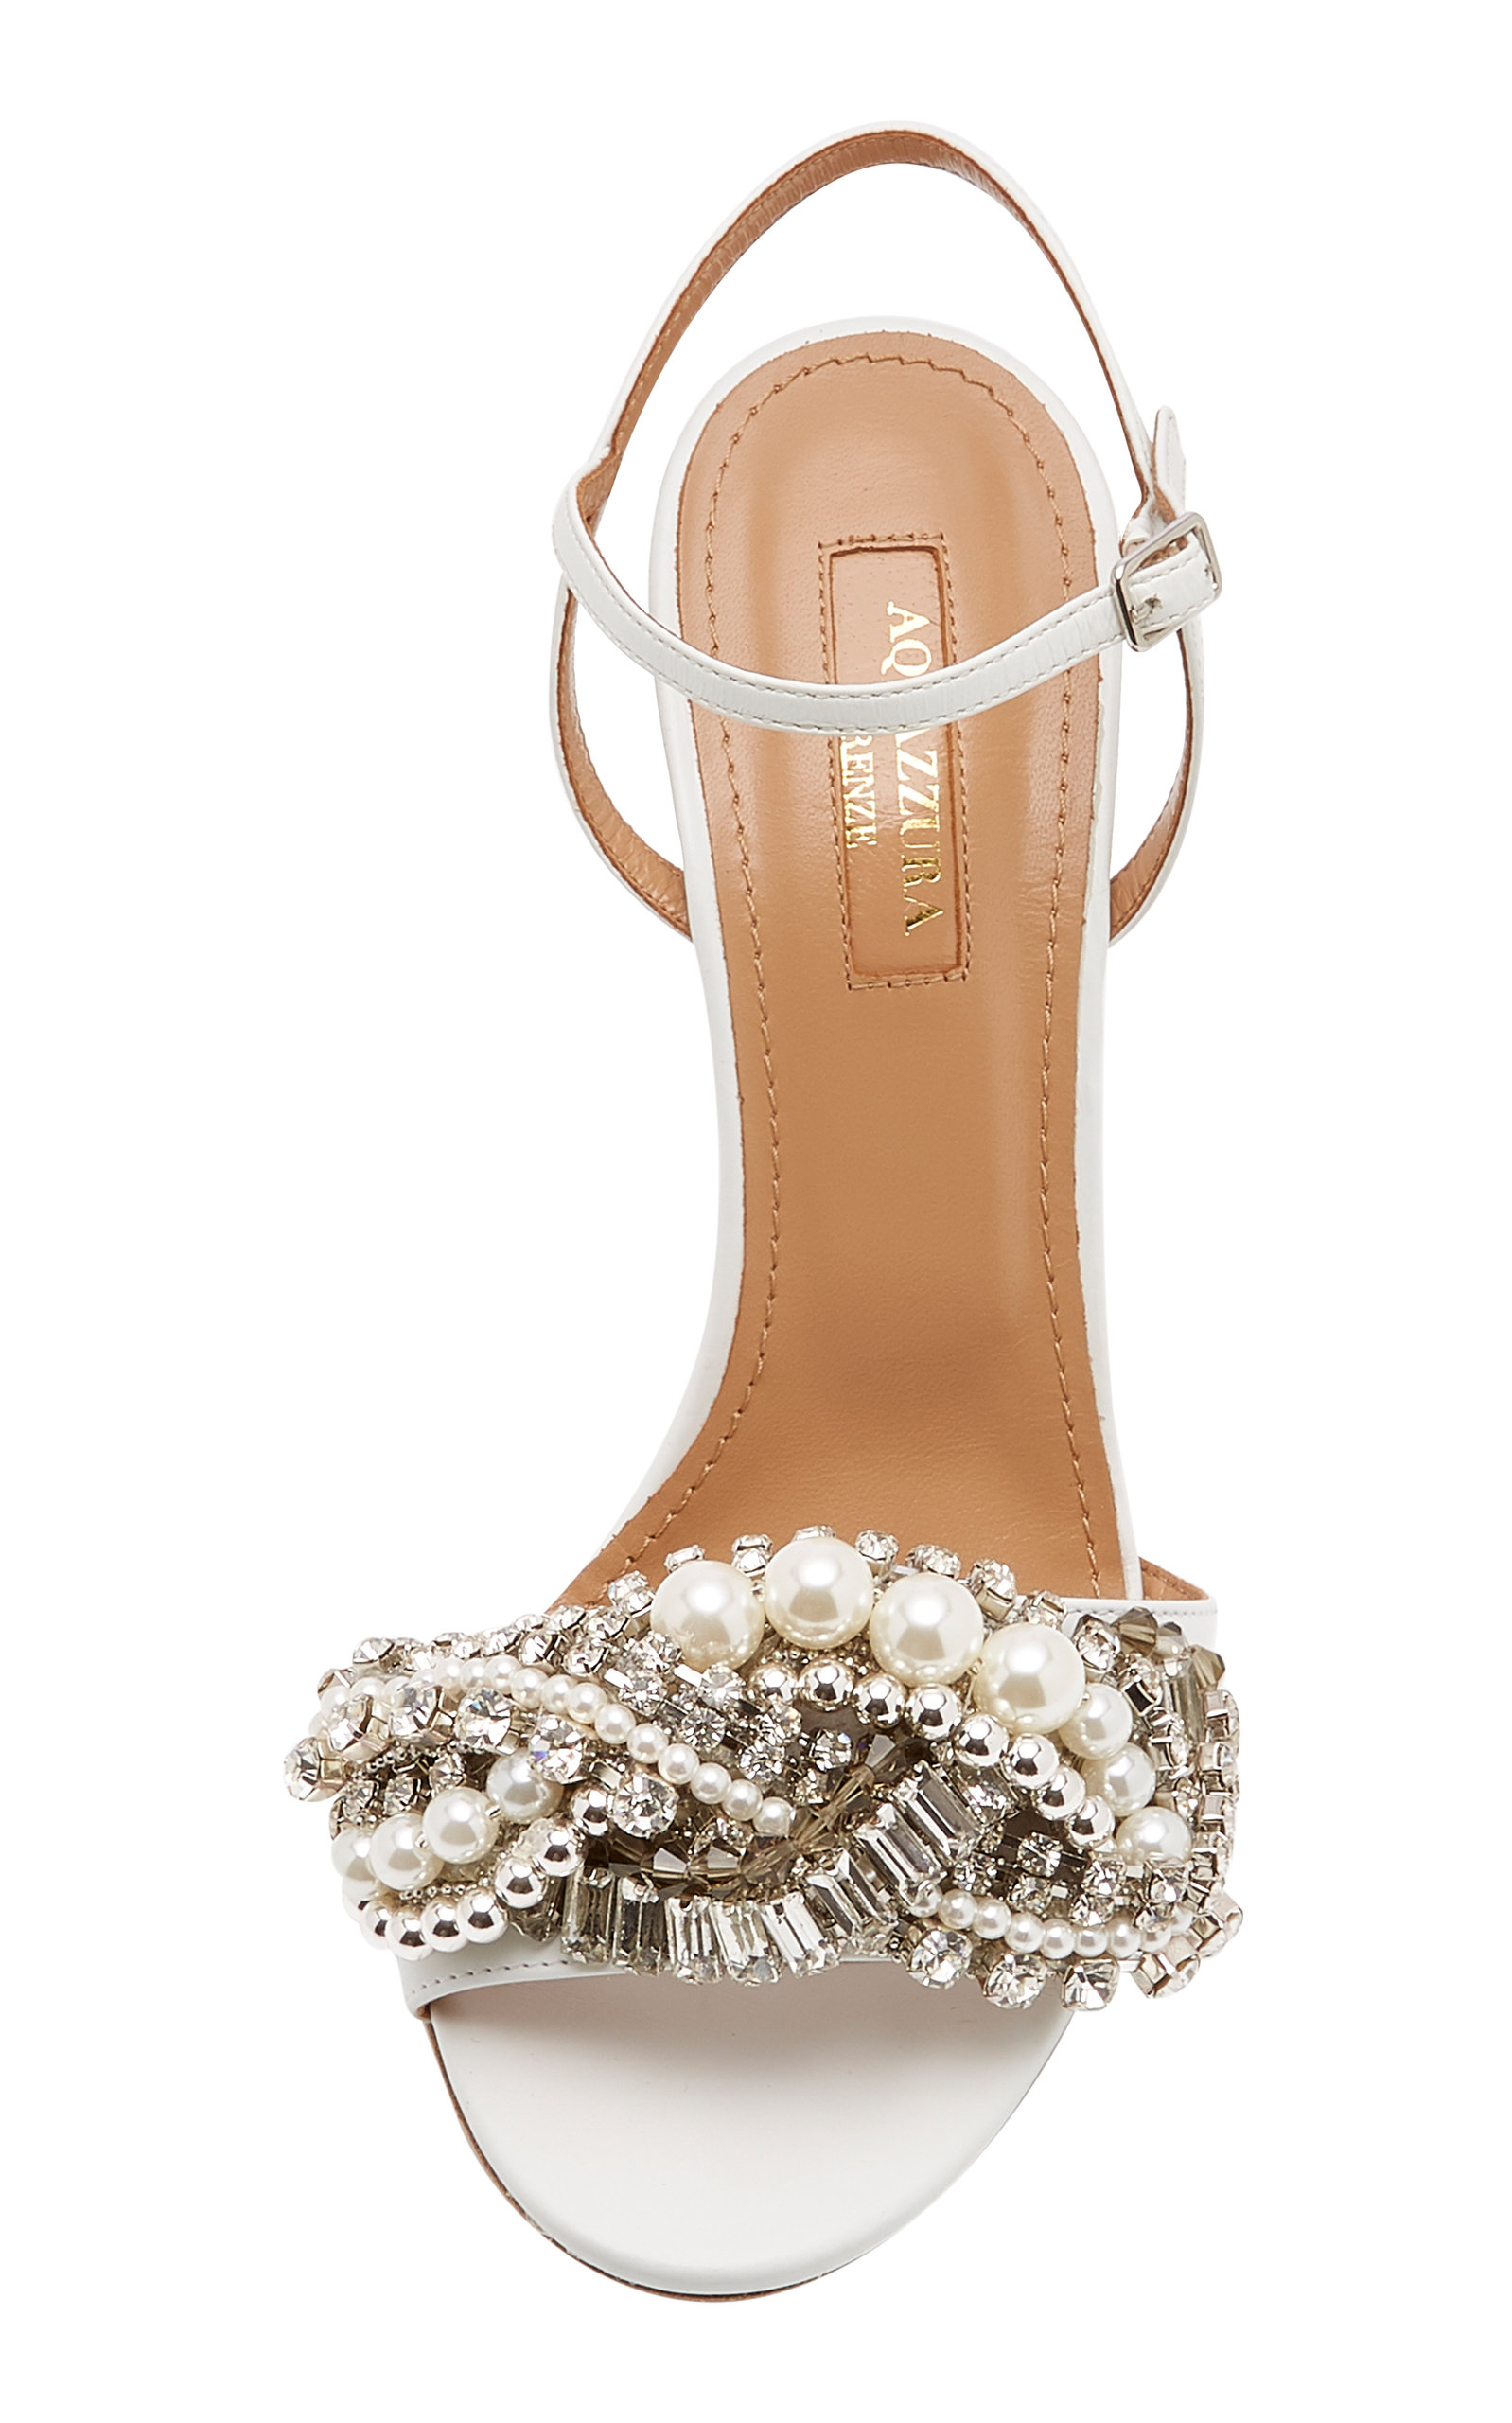 1293c90dd AquazzuraWild Chain Crystal and Faux Pearl-Embellished Leather Sandals.  CLOSE. Loading. Loading